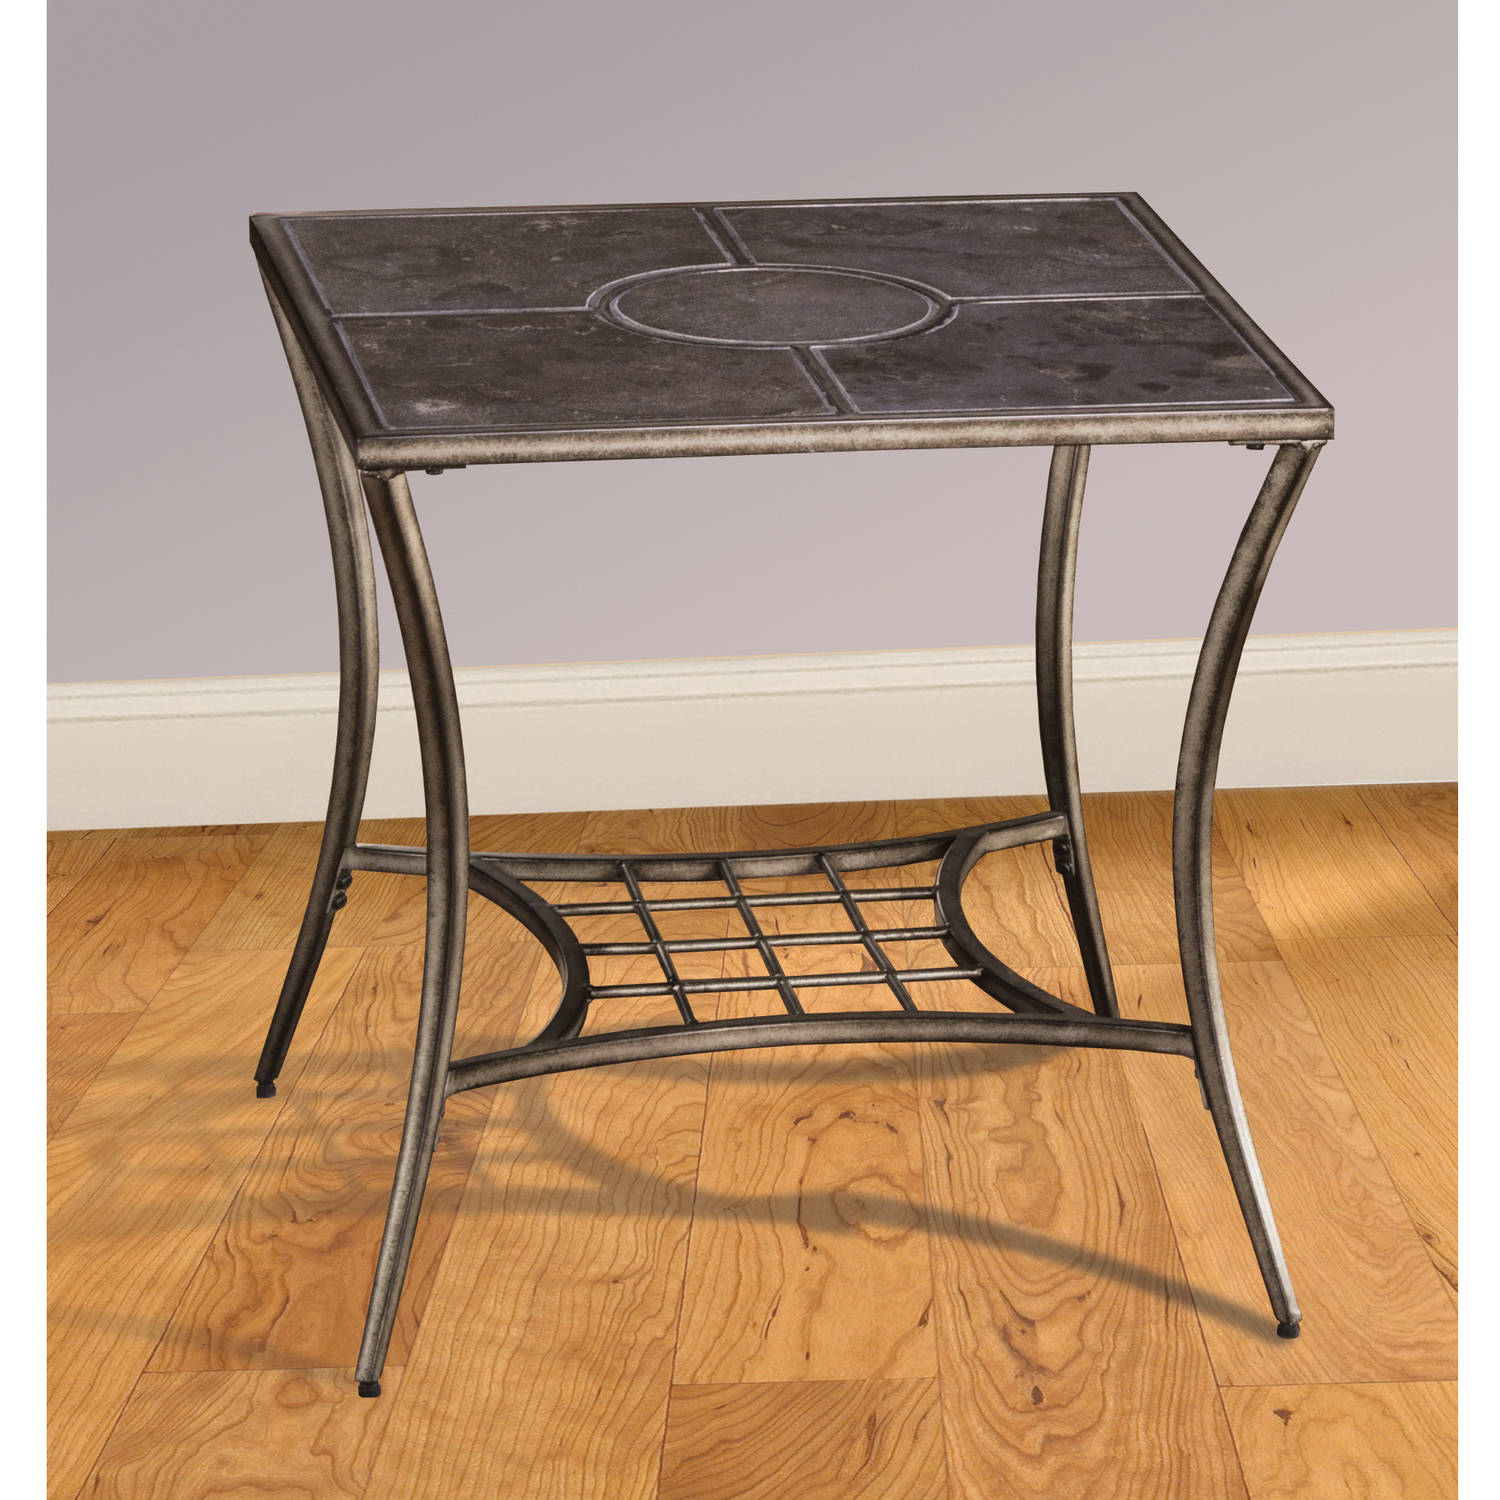 Wesson Cend Table, Black Pewter with Blue Stone